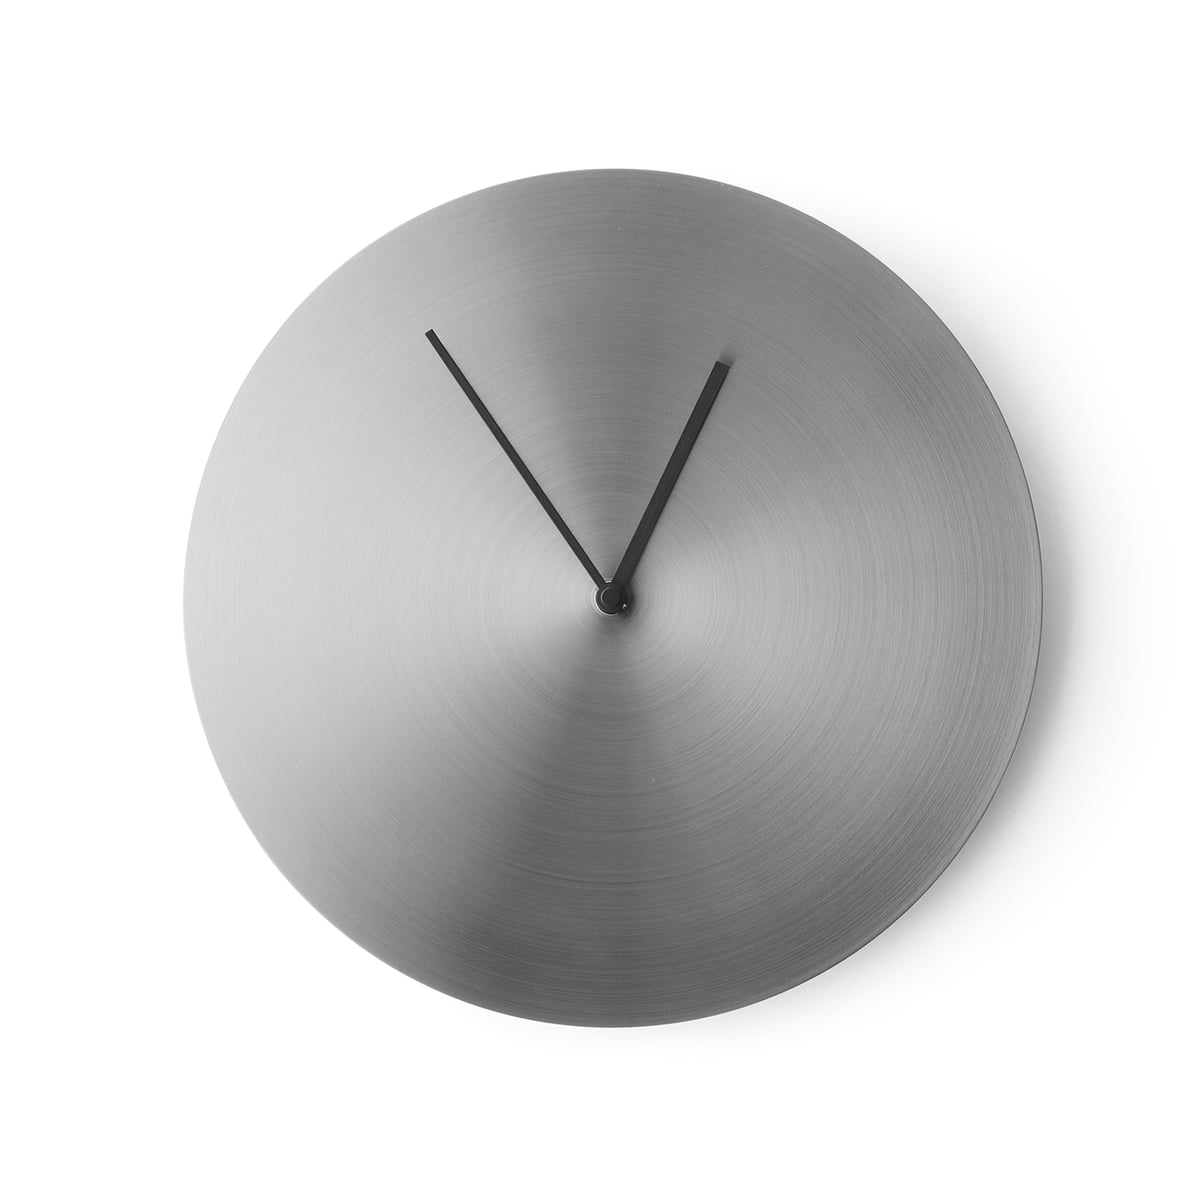 norm wall clock by menu in the shop - menu  norm wall clock brushed stainless steel